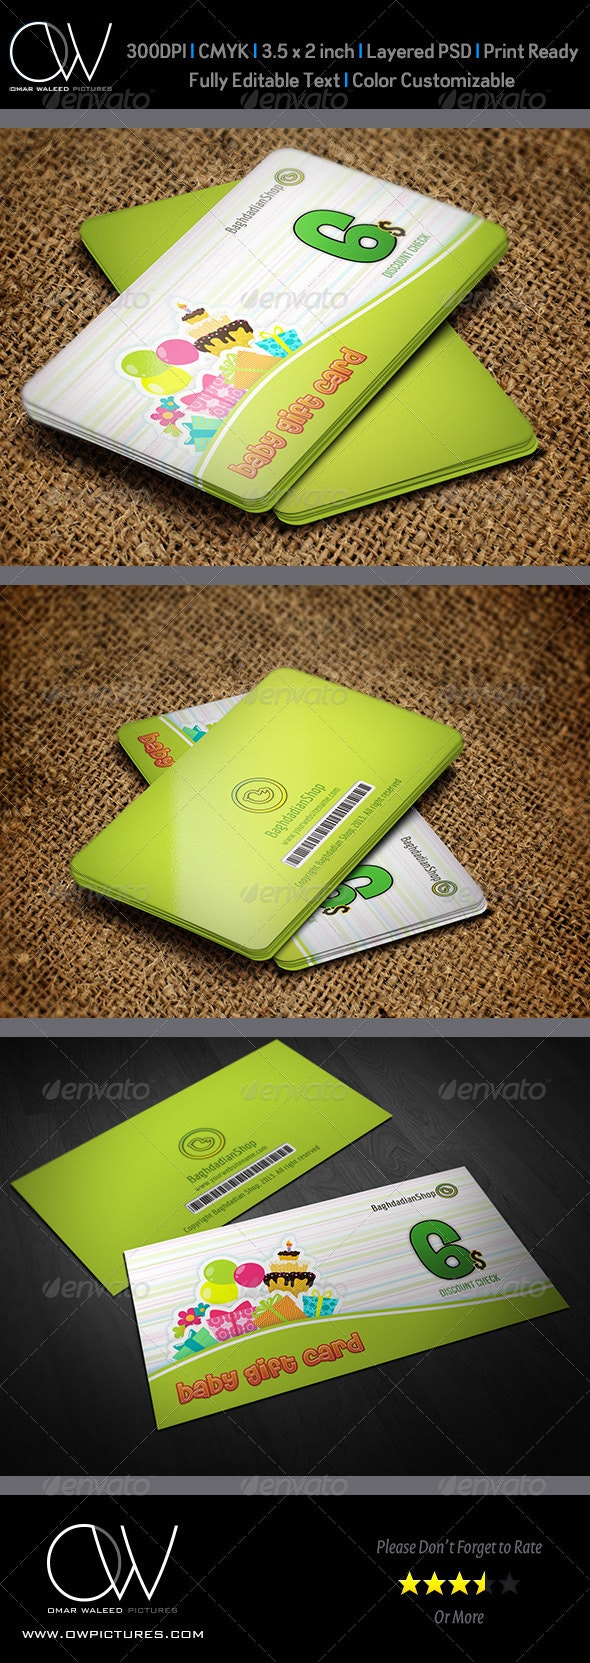 Gift Voucher Card Vol 5 - Cards & Invites Print Templates